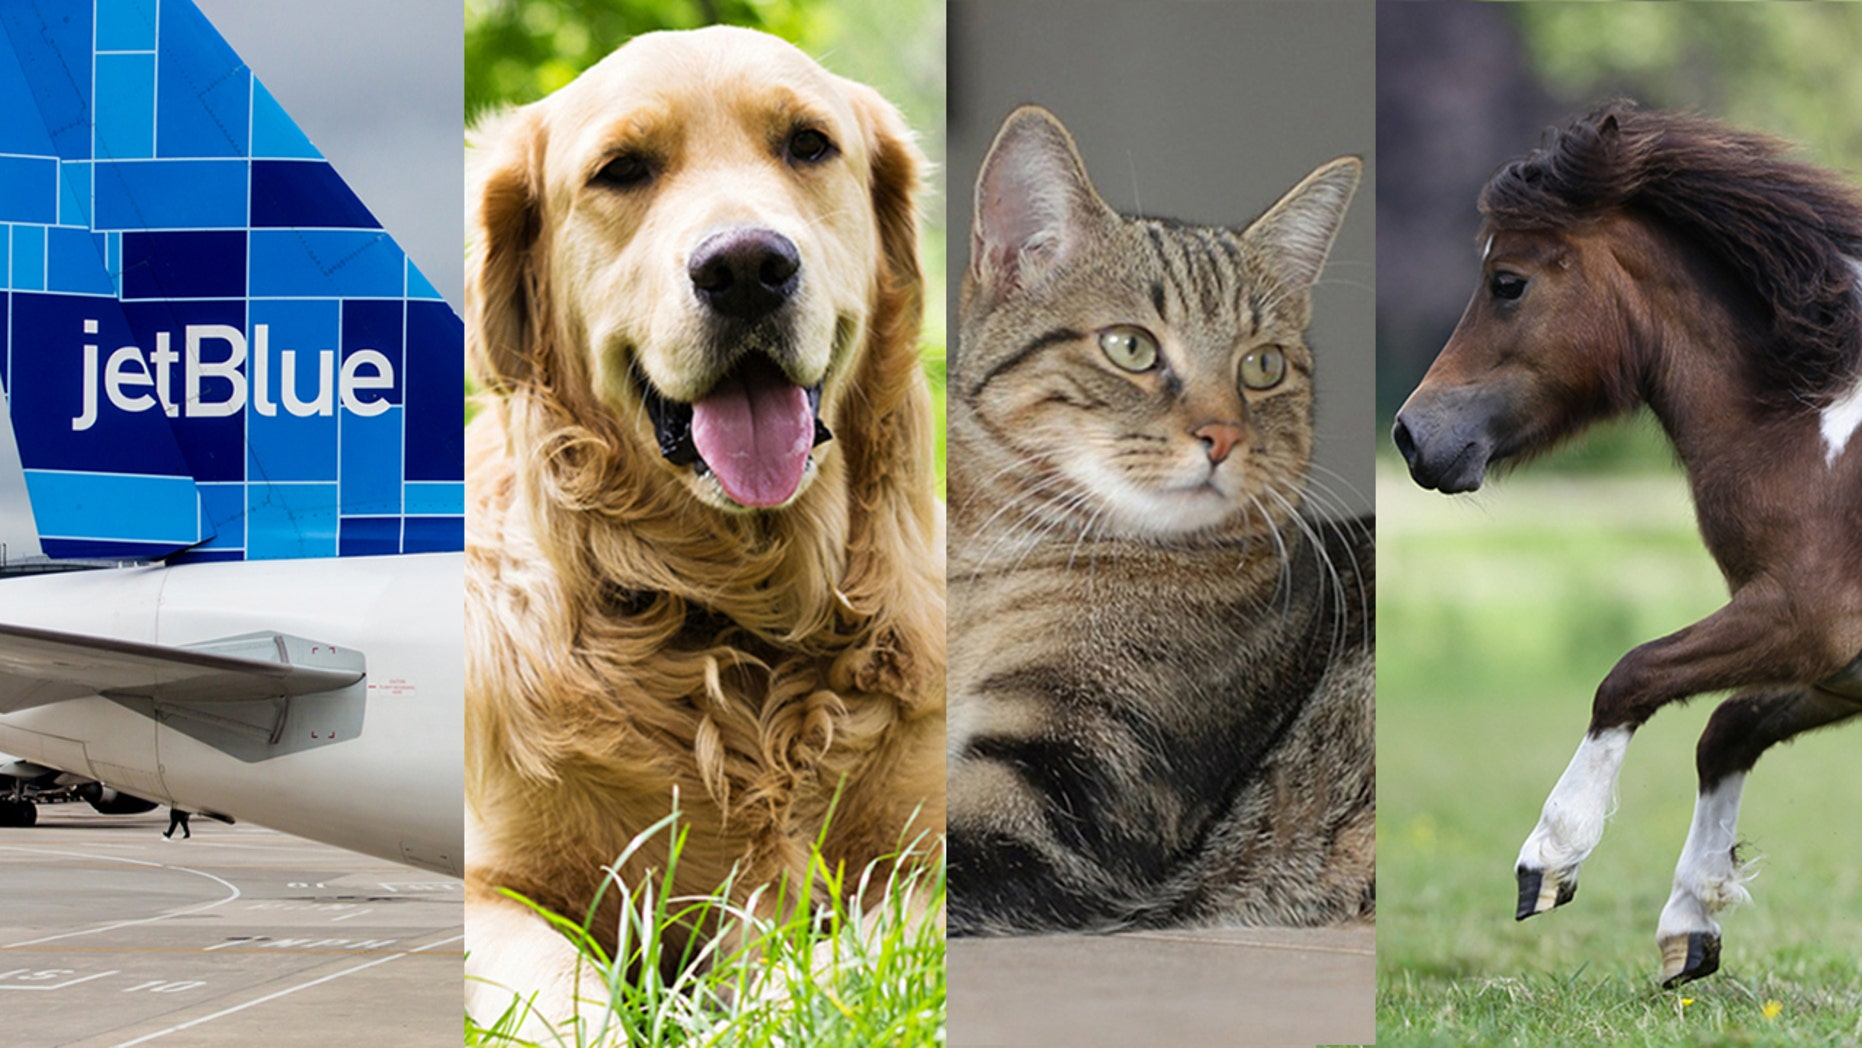 Image of: Dog Breeds Jetblue Changing Emotional Support Animal Policy Adding Requirements For Additional Documentation Paw Prints Jetblue Changing Emotional Support Animal Policy Adding